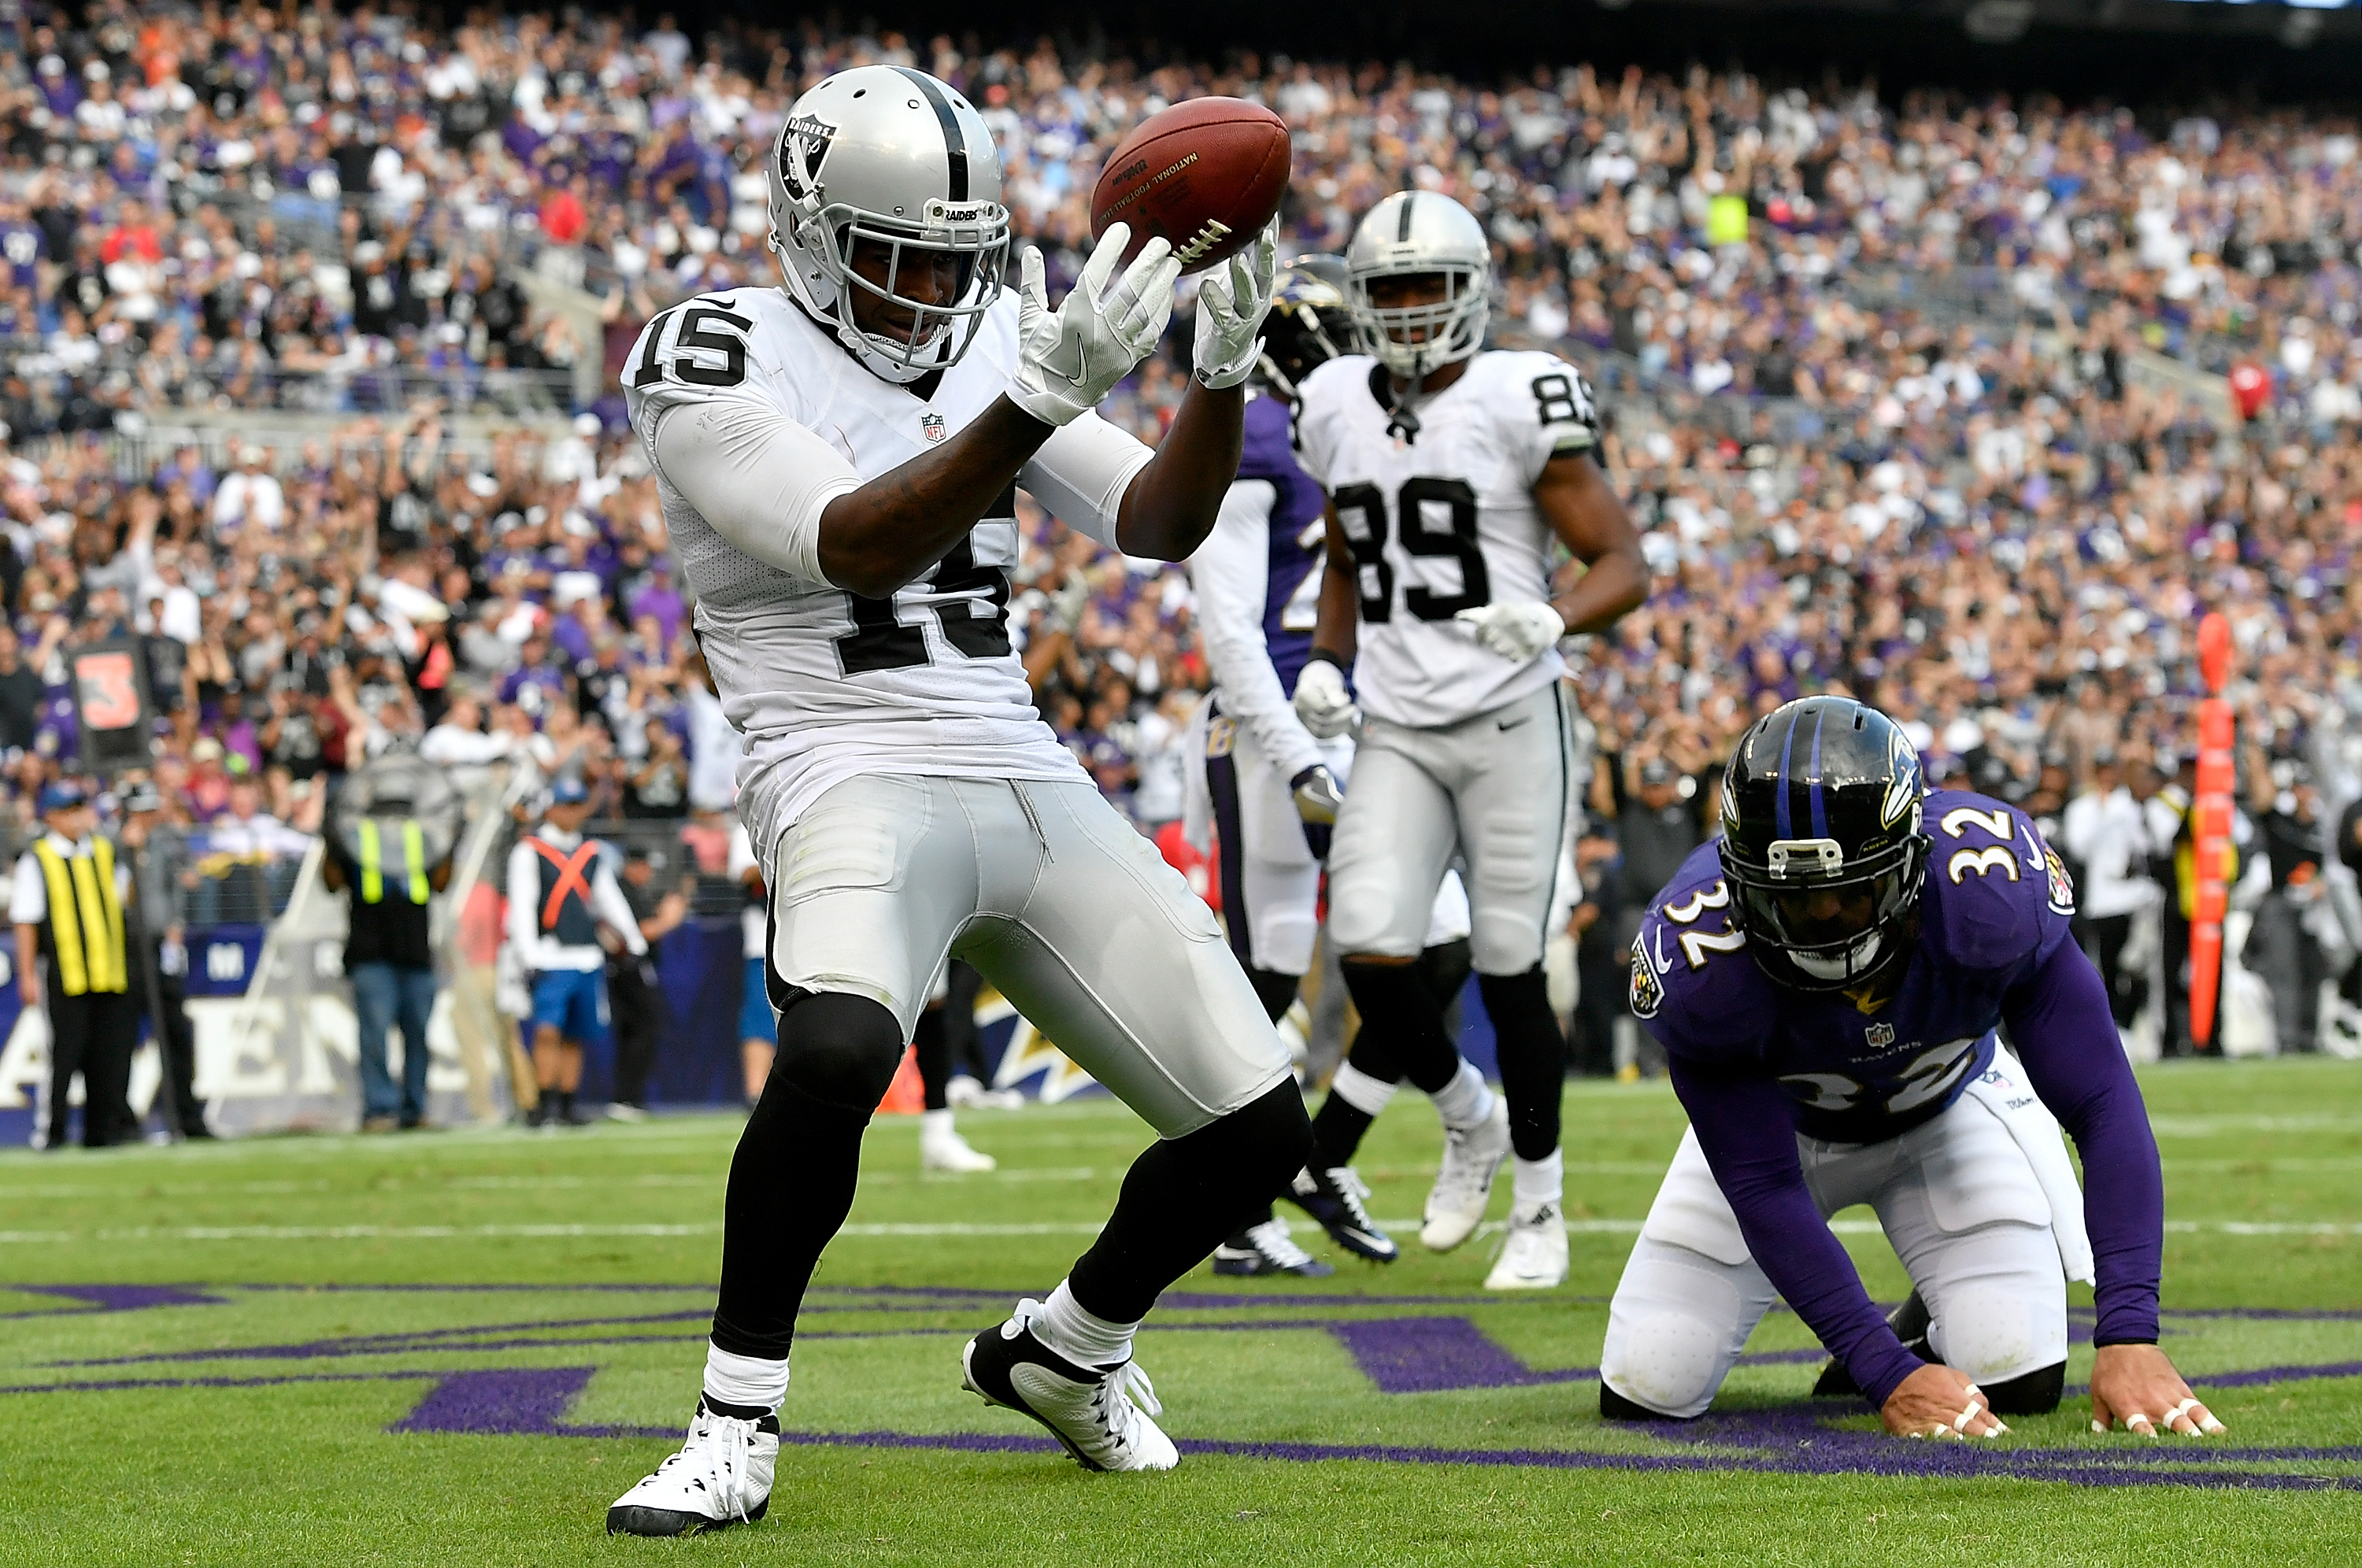 Michael Crabtree of the Oakland Raiders celebrates after scoring a touchdown against the Baltimore Ravens at M&T Bank Stadium on Oct. 2, 2016 in Baltimore, Maryland. (Photo by Larry French/Getty Images)